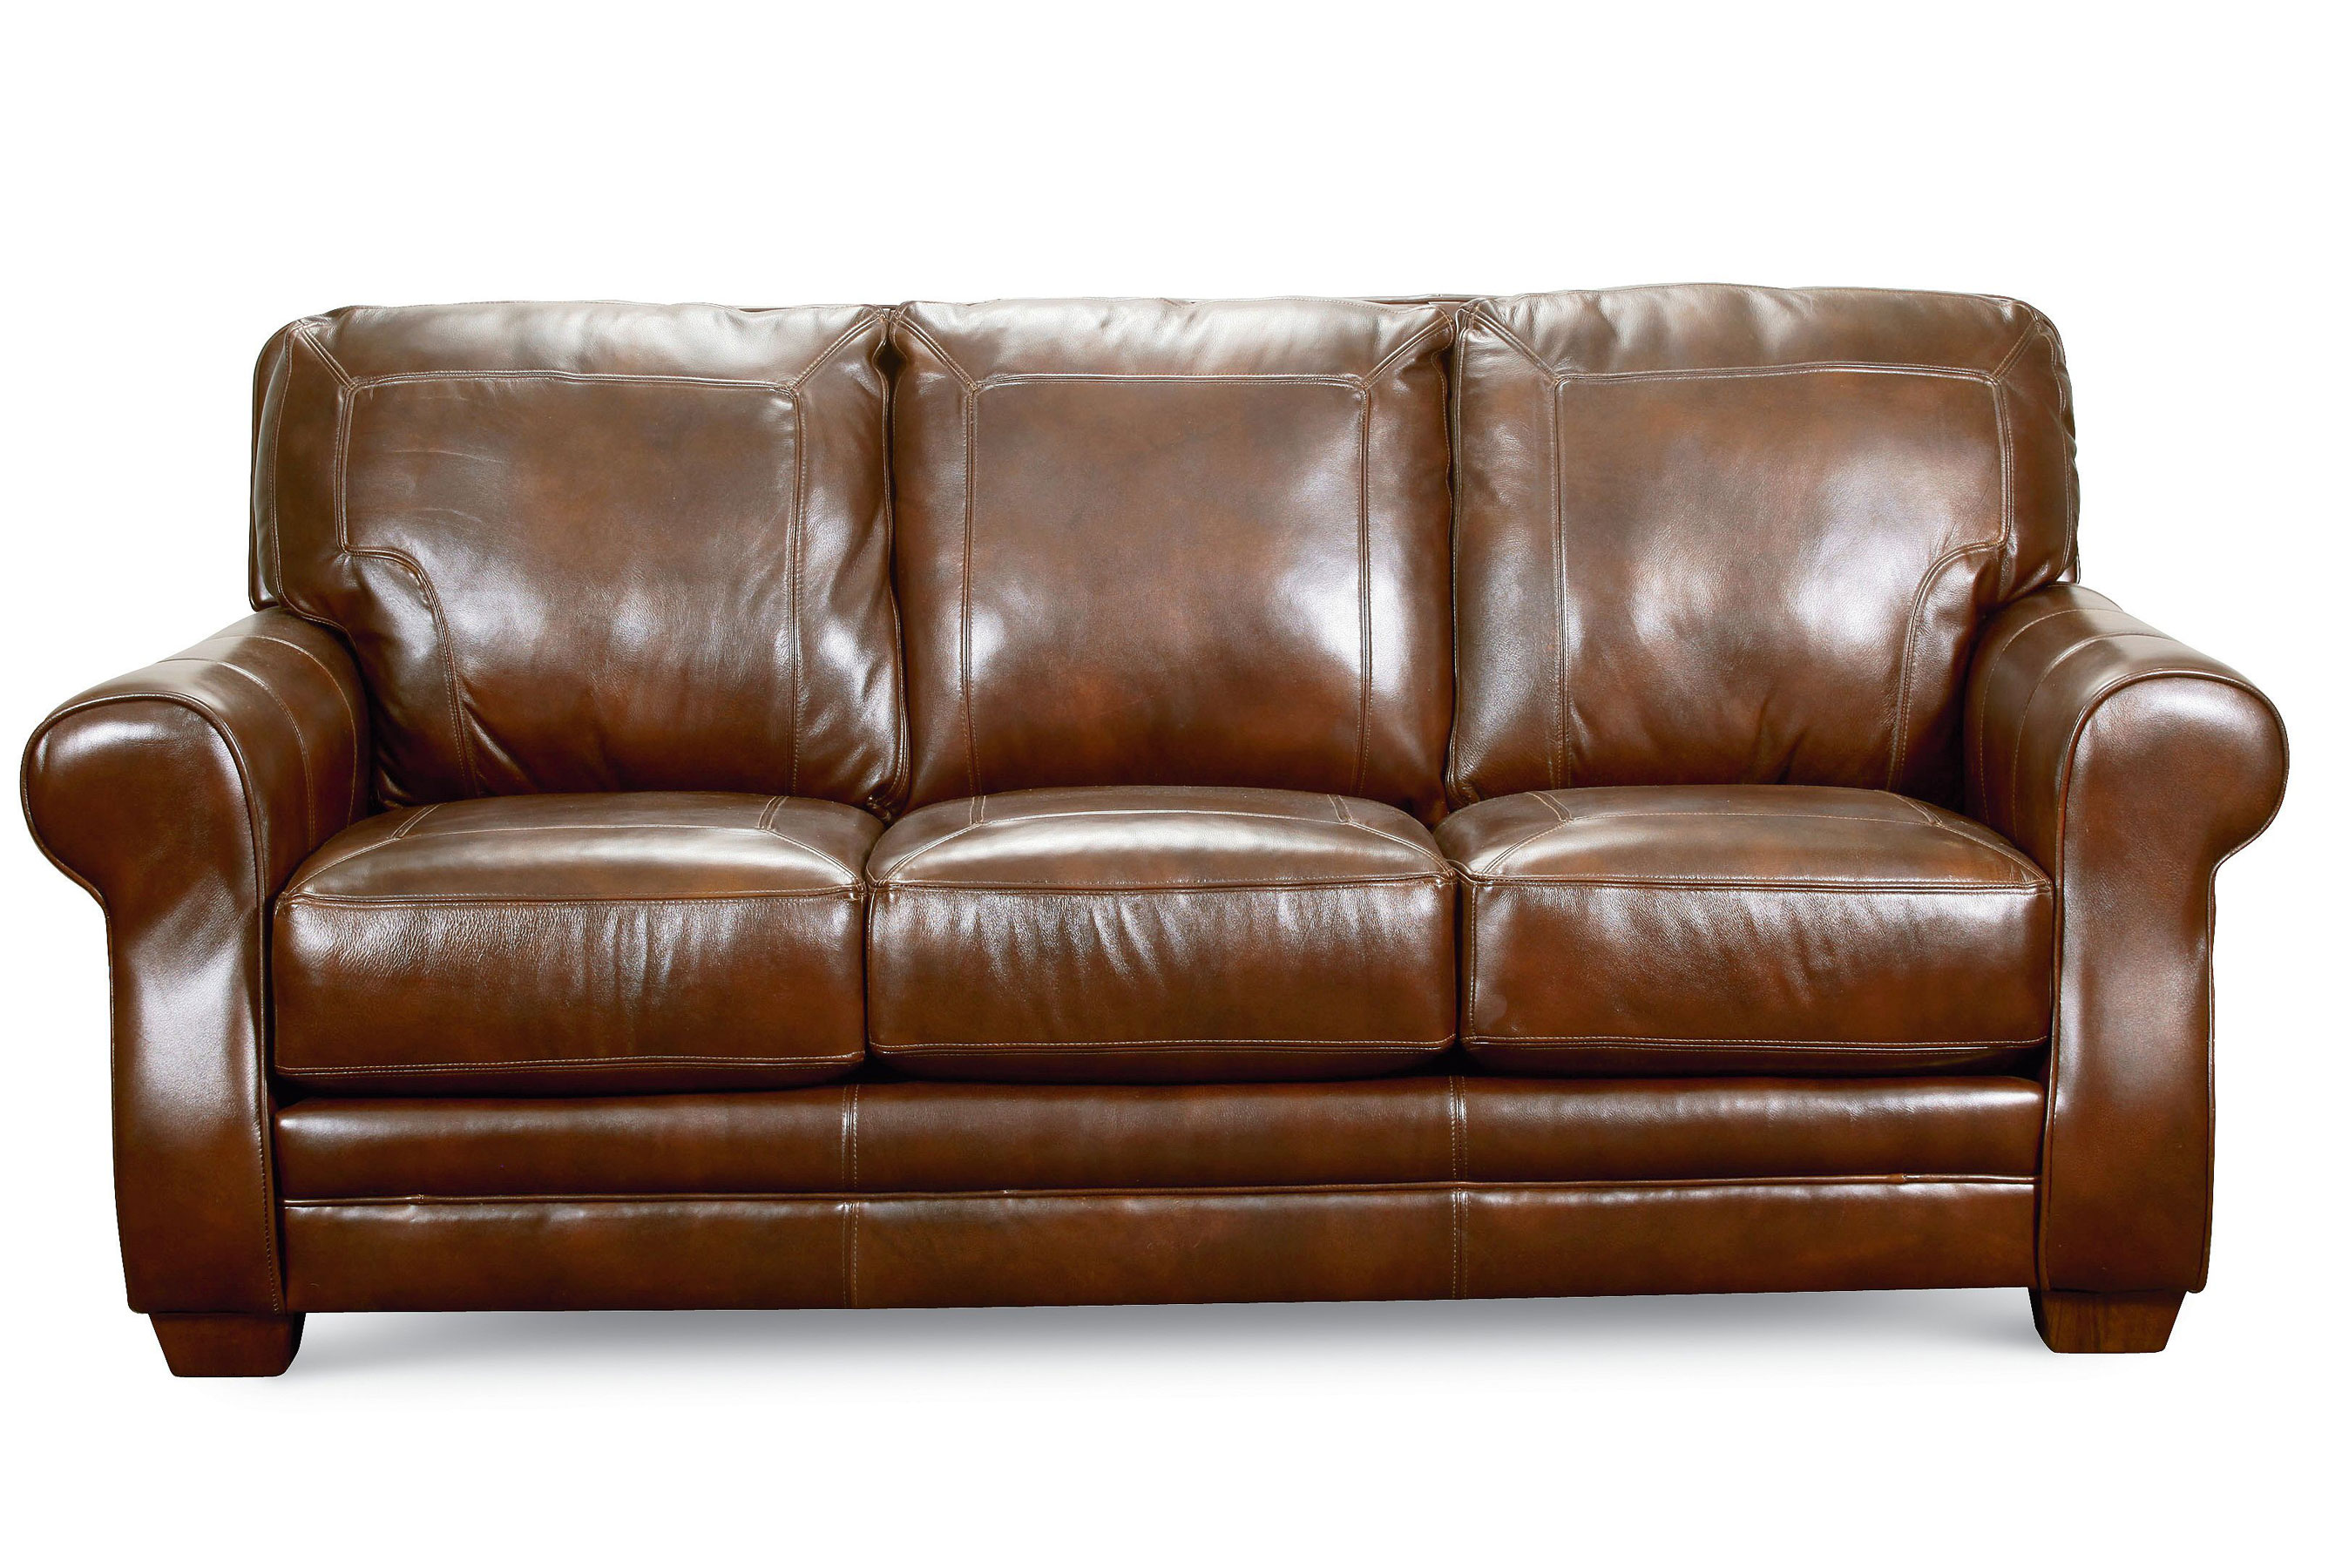 lane home furnishings leather sofa and loveseat from the bowden collection how to remove ink stain microfiber 84 548 sofas sectionals